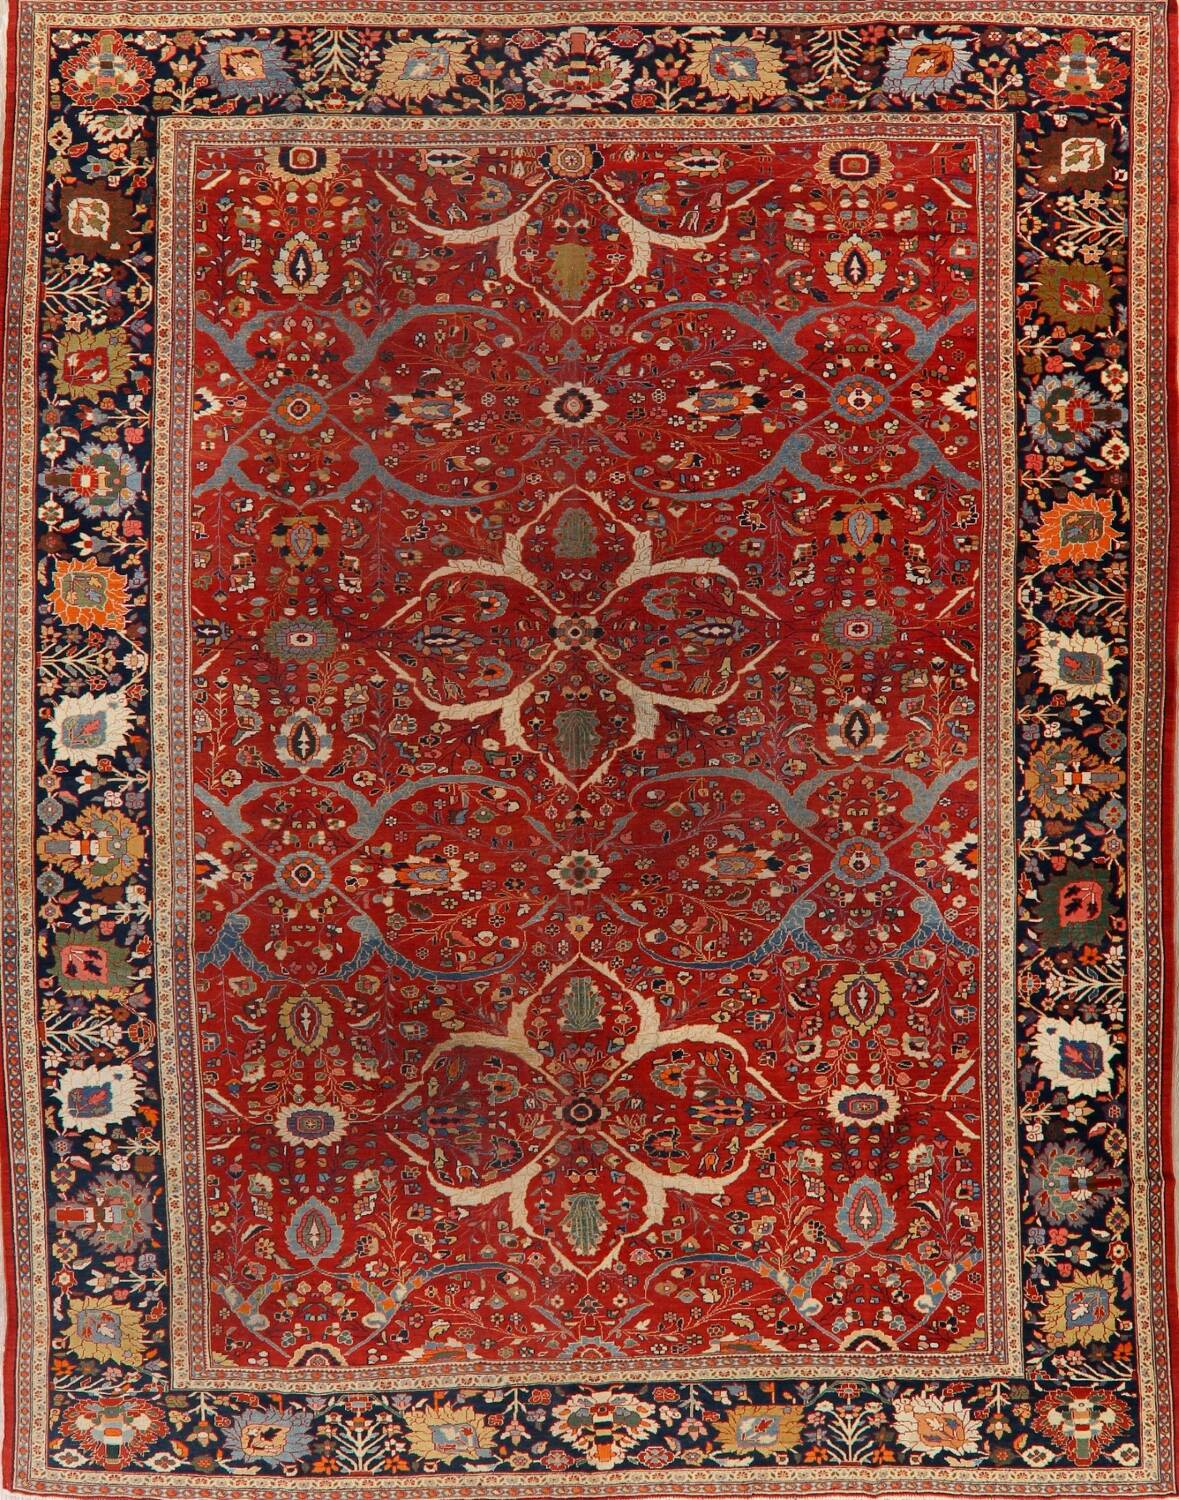 Pre-1900 Antique Sultanabad Vegetable Dye Persian Rug 11x14 image 2